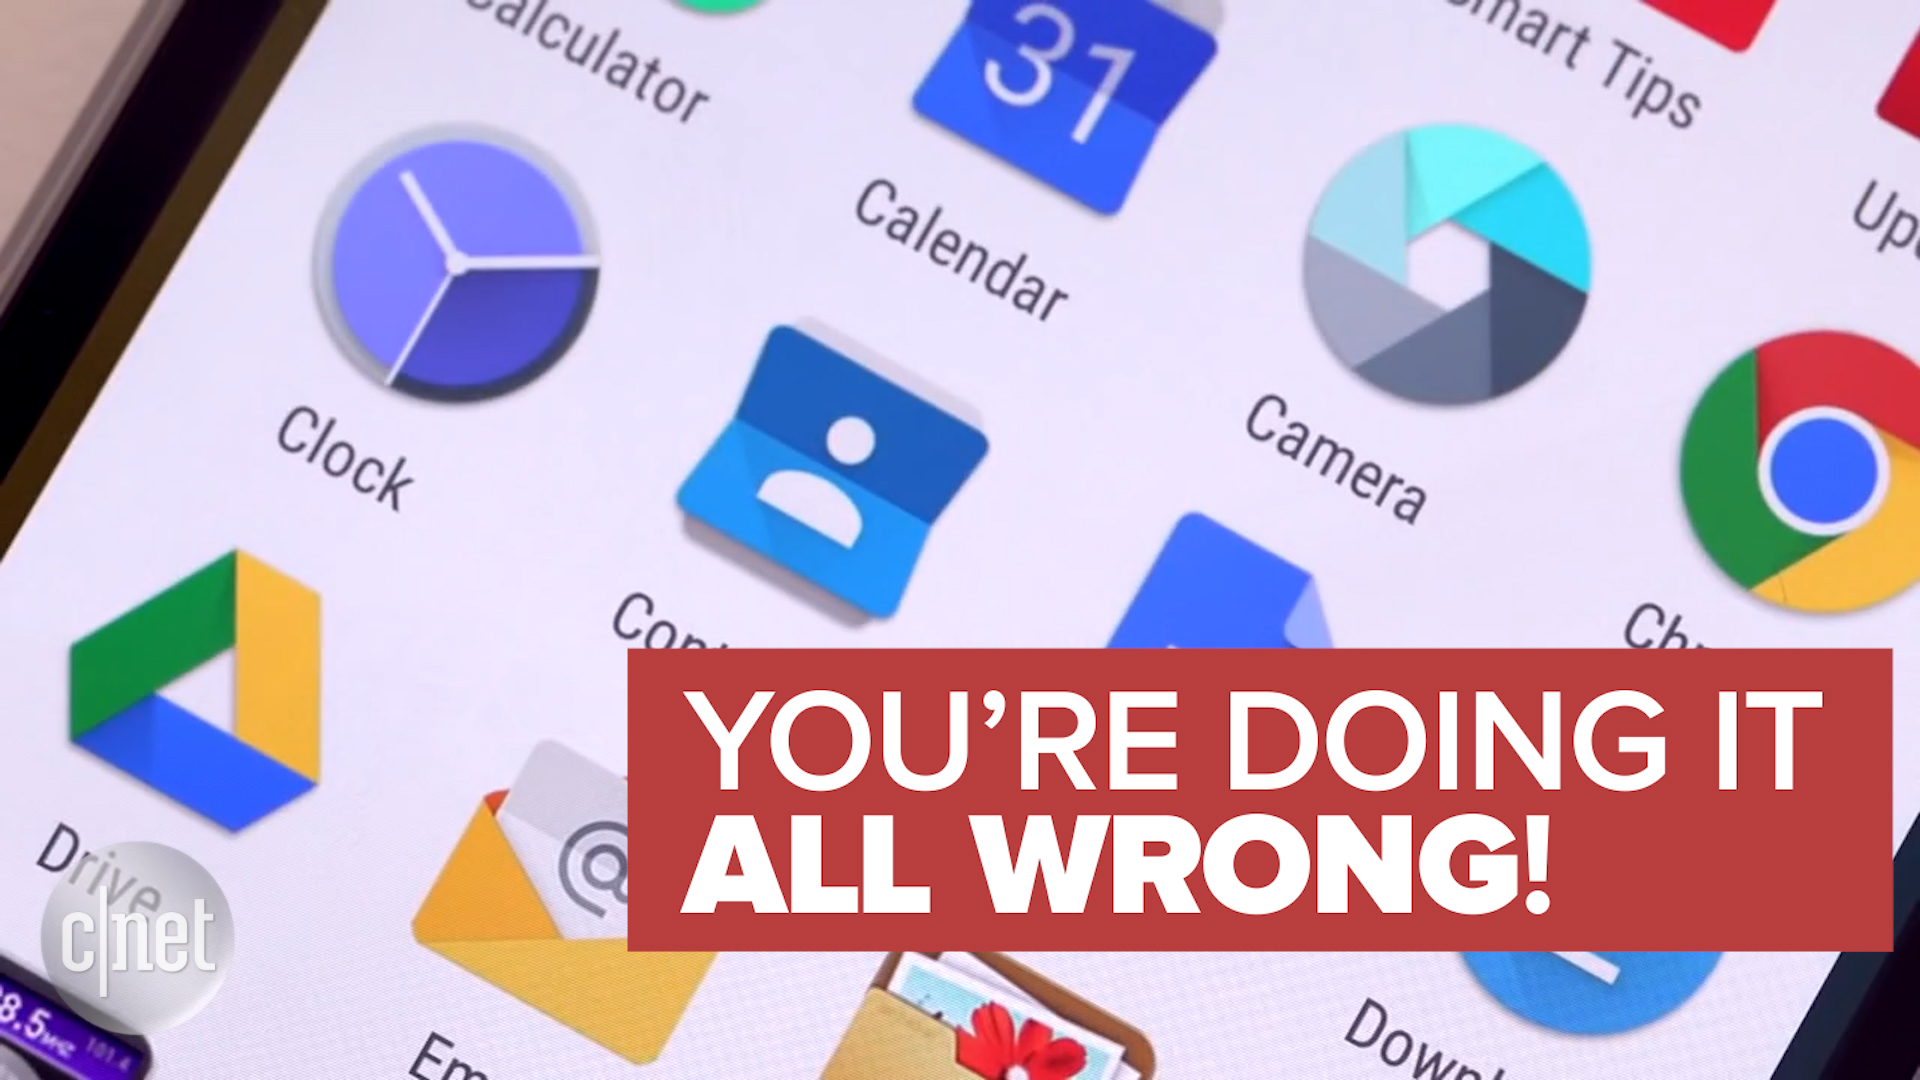 Video: It's time to make Android bloatware disappear